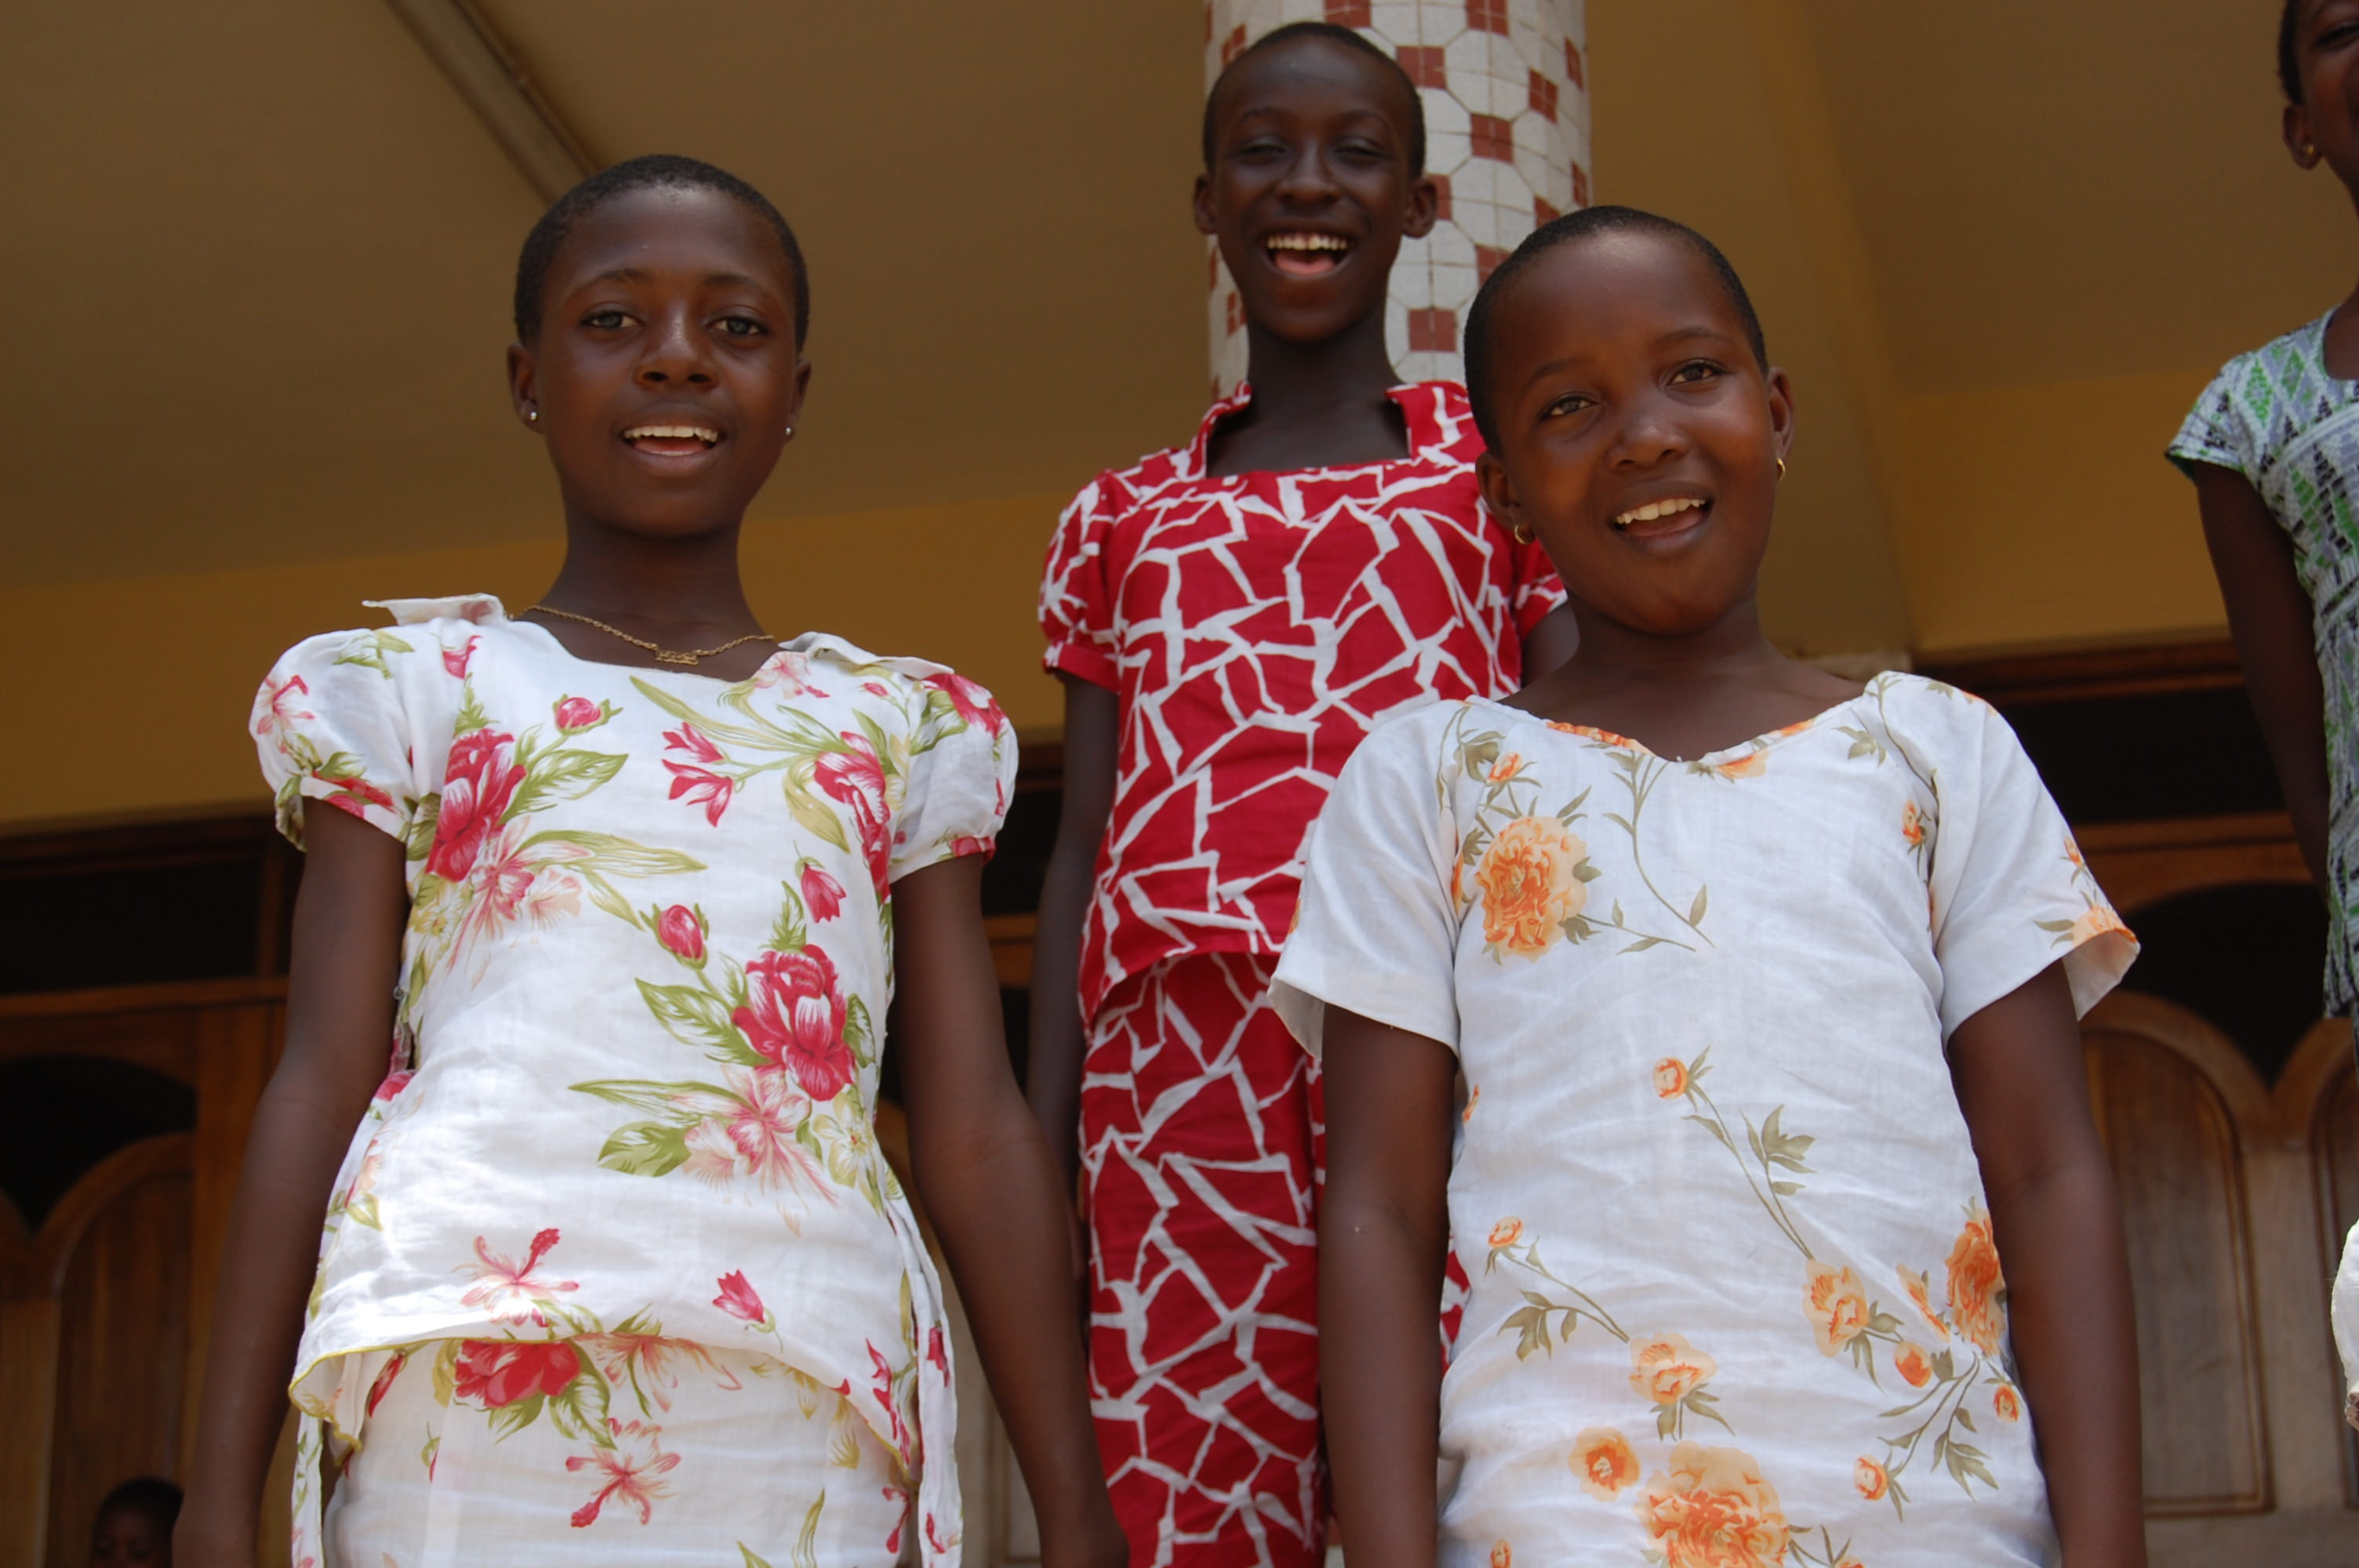 Sponsored children in Ghana with their Christmas dresses